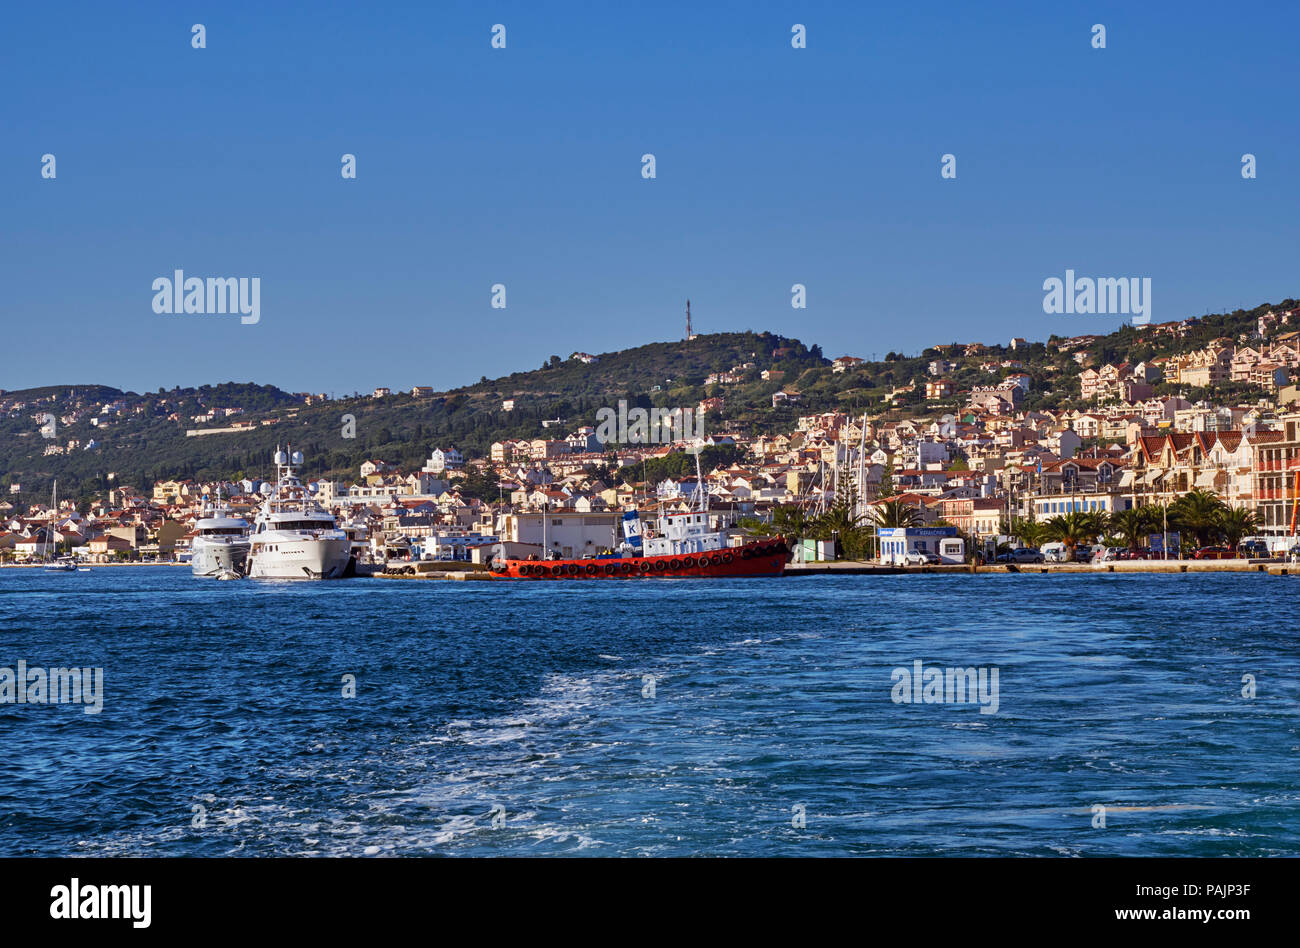 Port and town of Argostoli. Cephalonia, Ionian Islands, Greece. - Stock Image